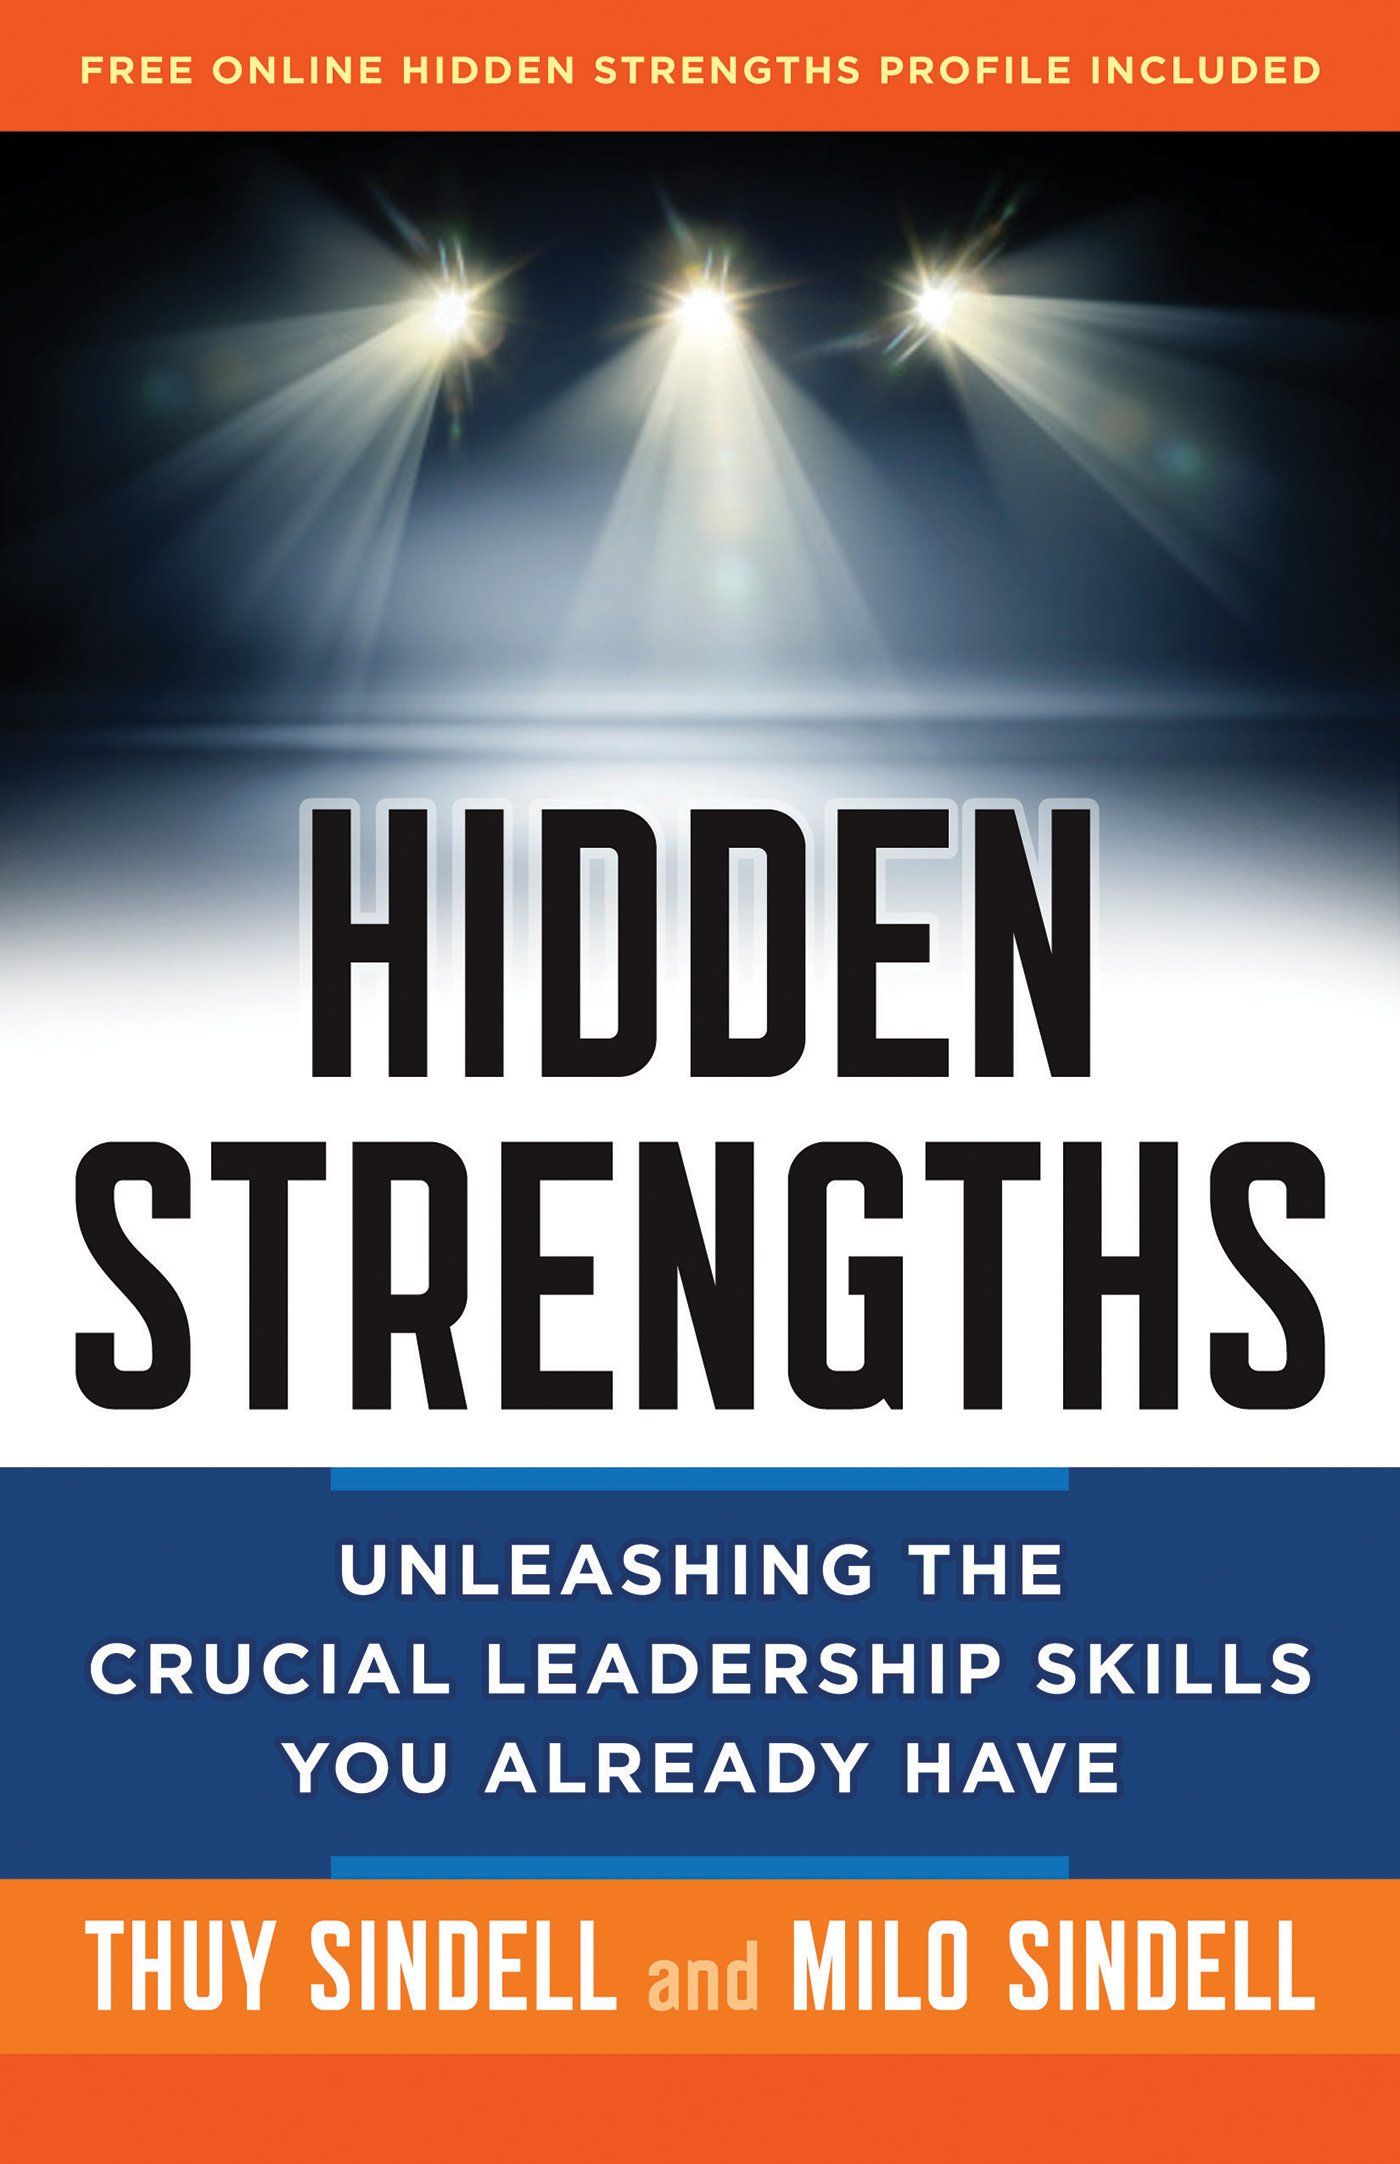 Hidden Strengths: Unleashing the Crucial Leadership Skills You Already Have